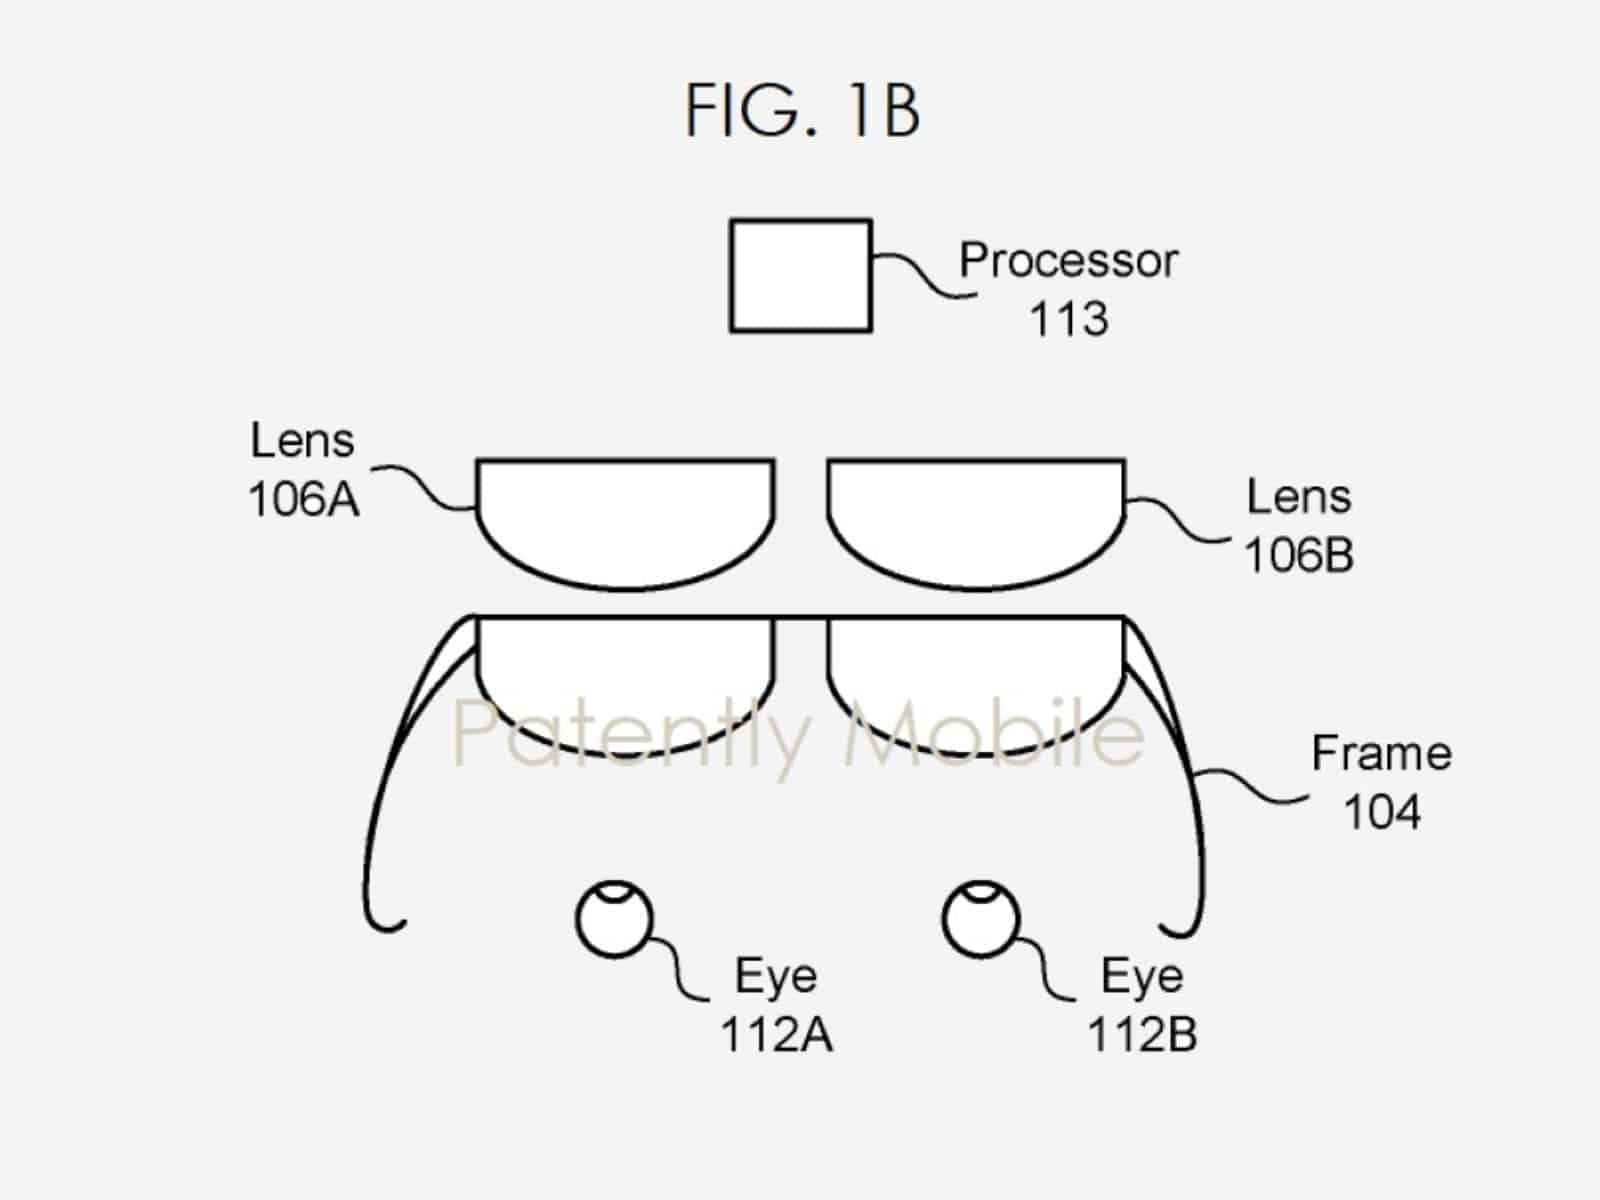 02 2020 Google Glasses patent from patentlymobile